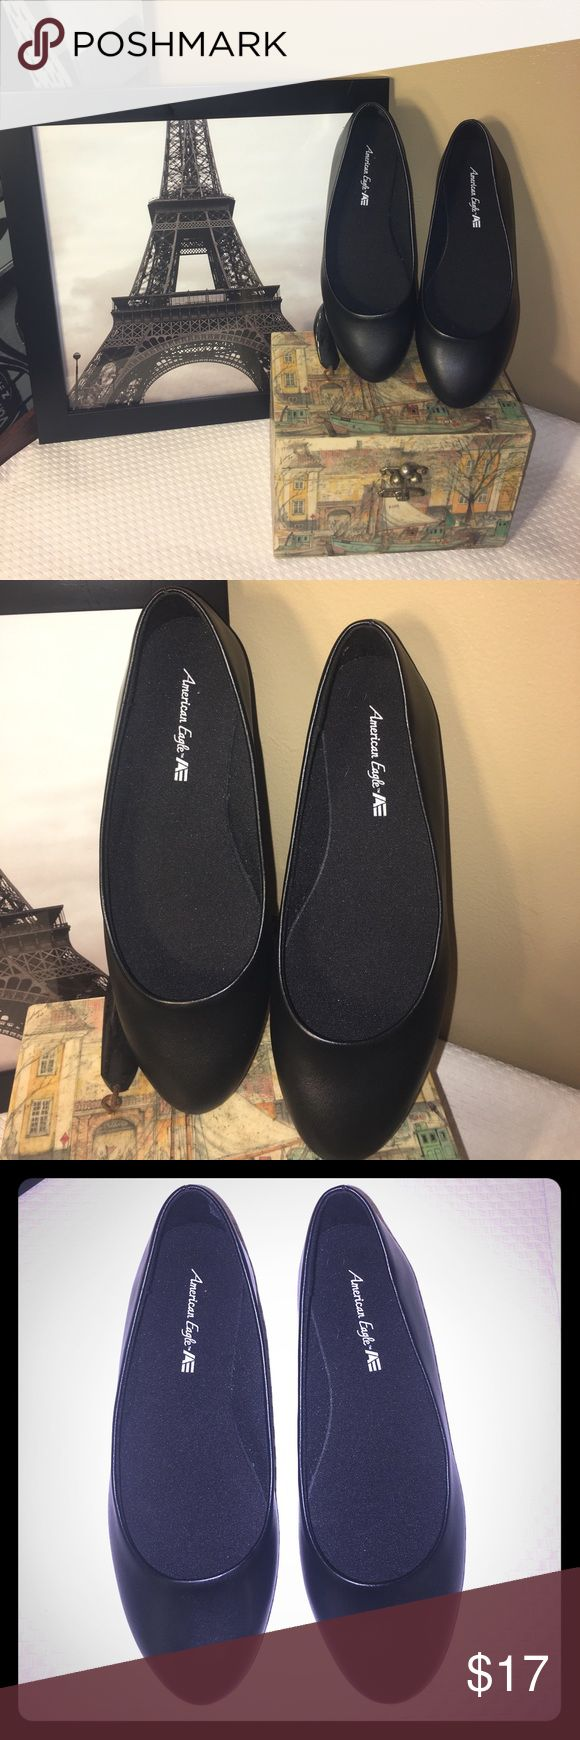 American eagle 🦅black leather flats-size 5 American Eagle 🦅 size 5 black leather flats in perfect condition American Eagle Outfitters Shoes Flats & Loafers